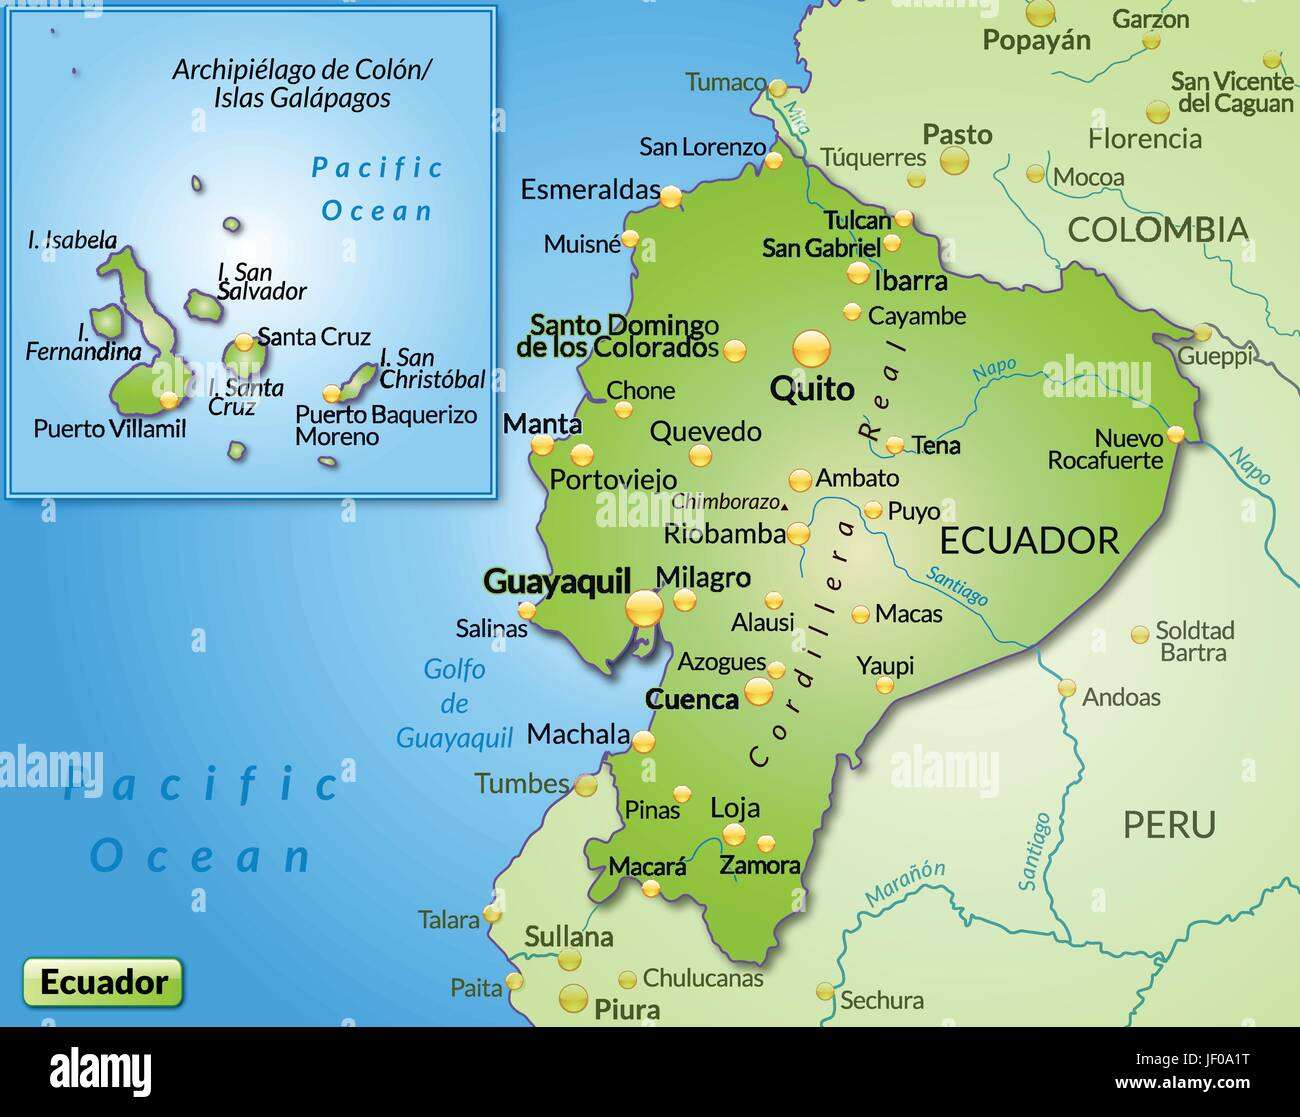 Ecuador In South America As A Map With All Important Topographical - Ecuador map